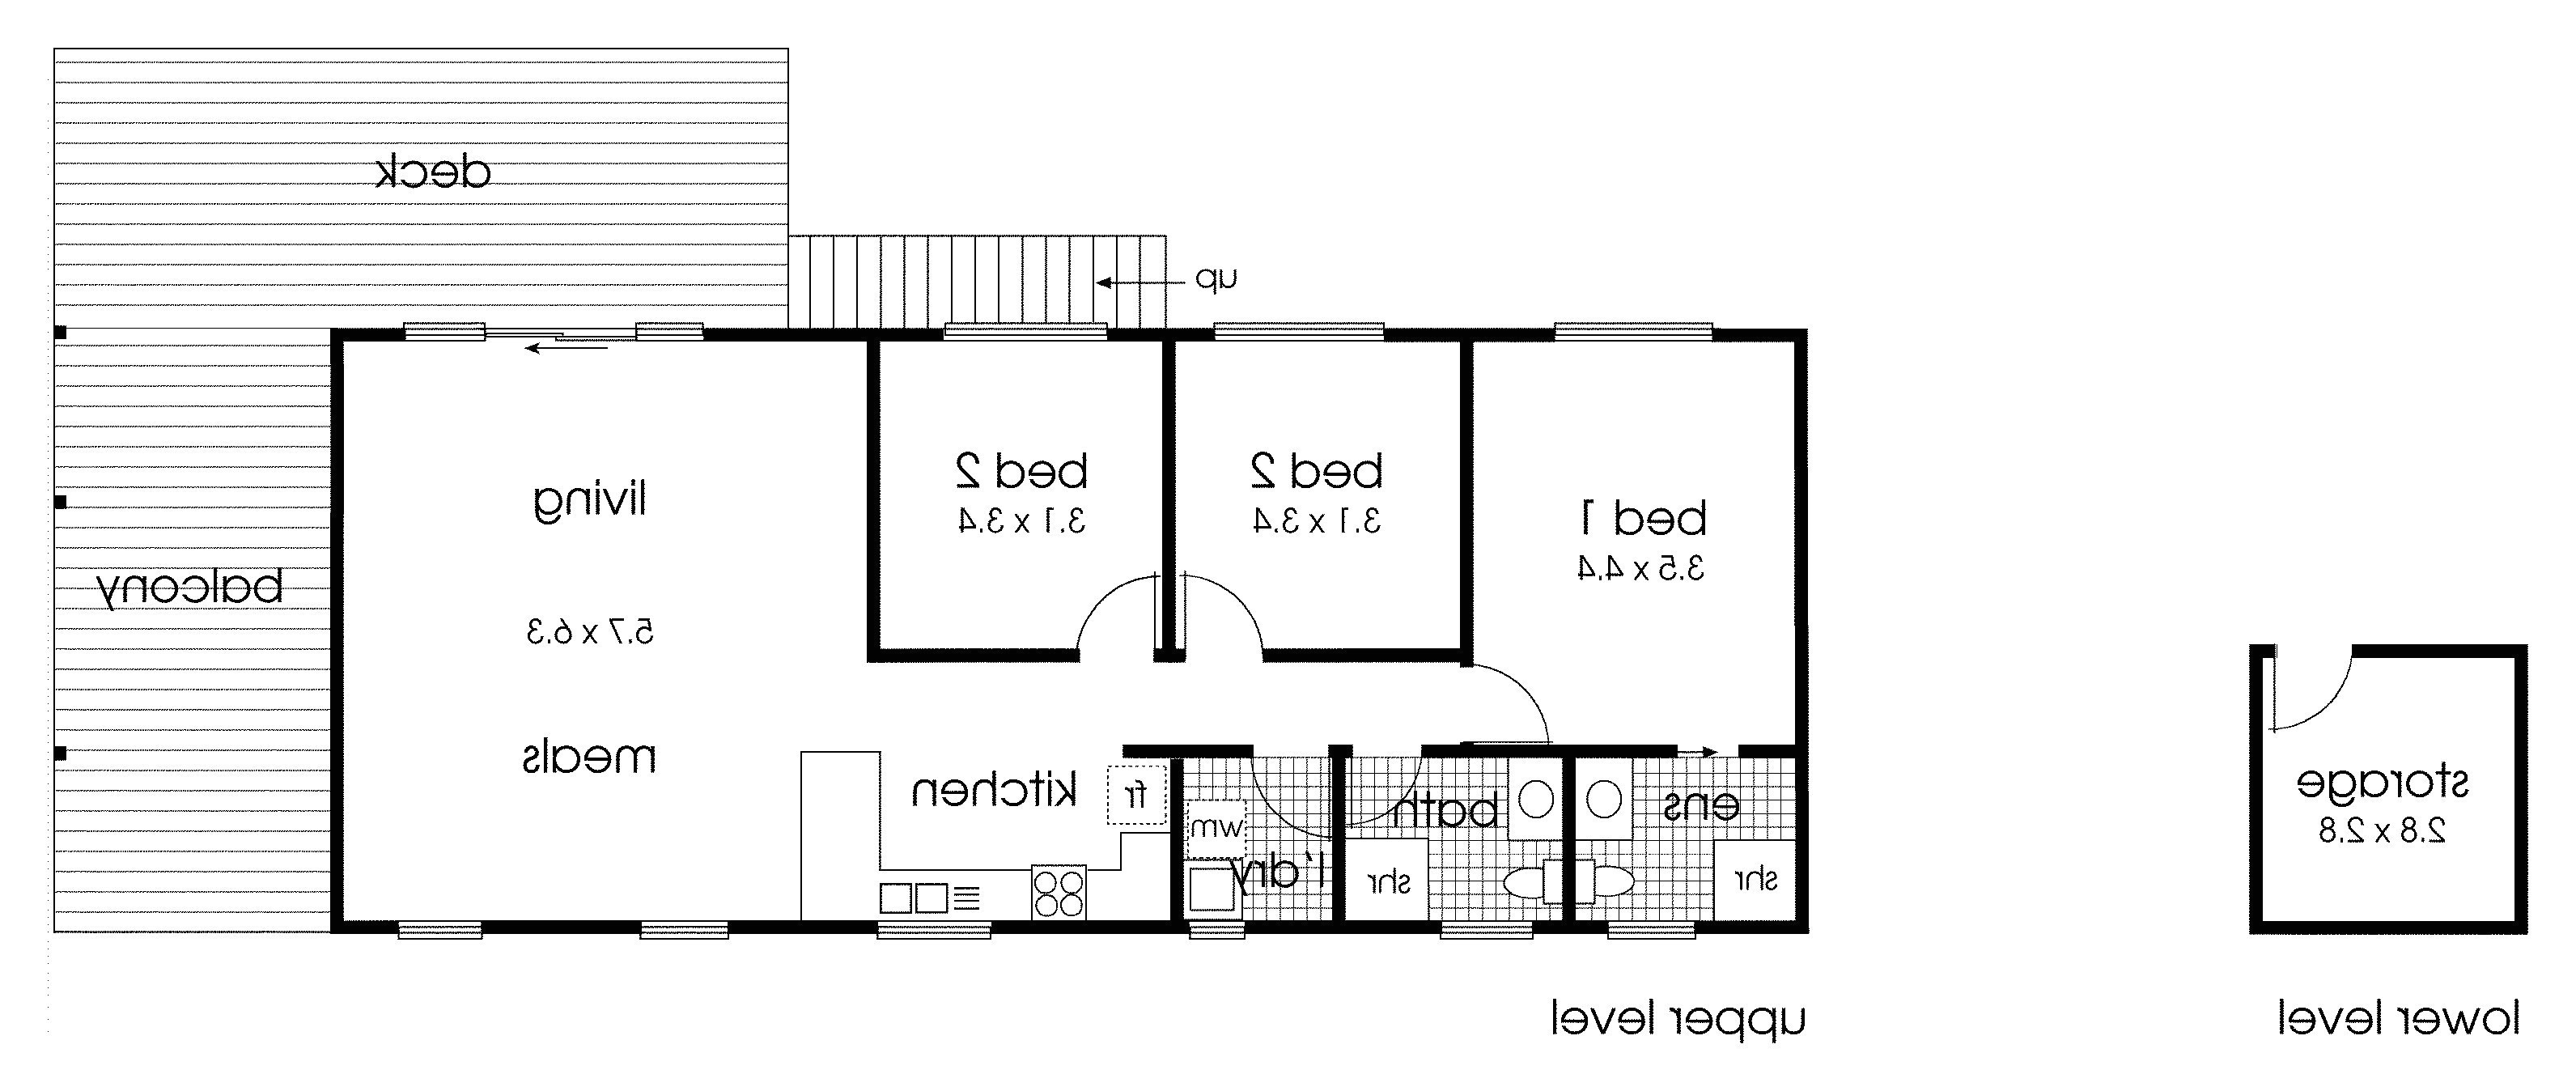 make your own house plans new diagram making thearchivast